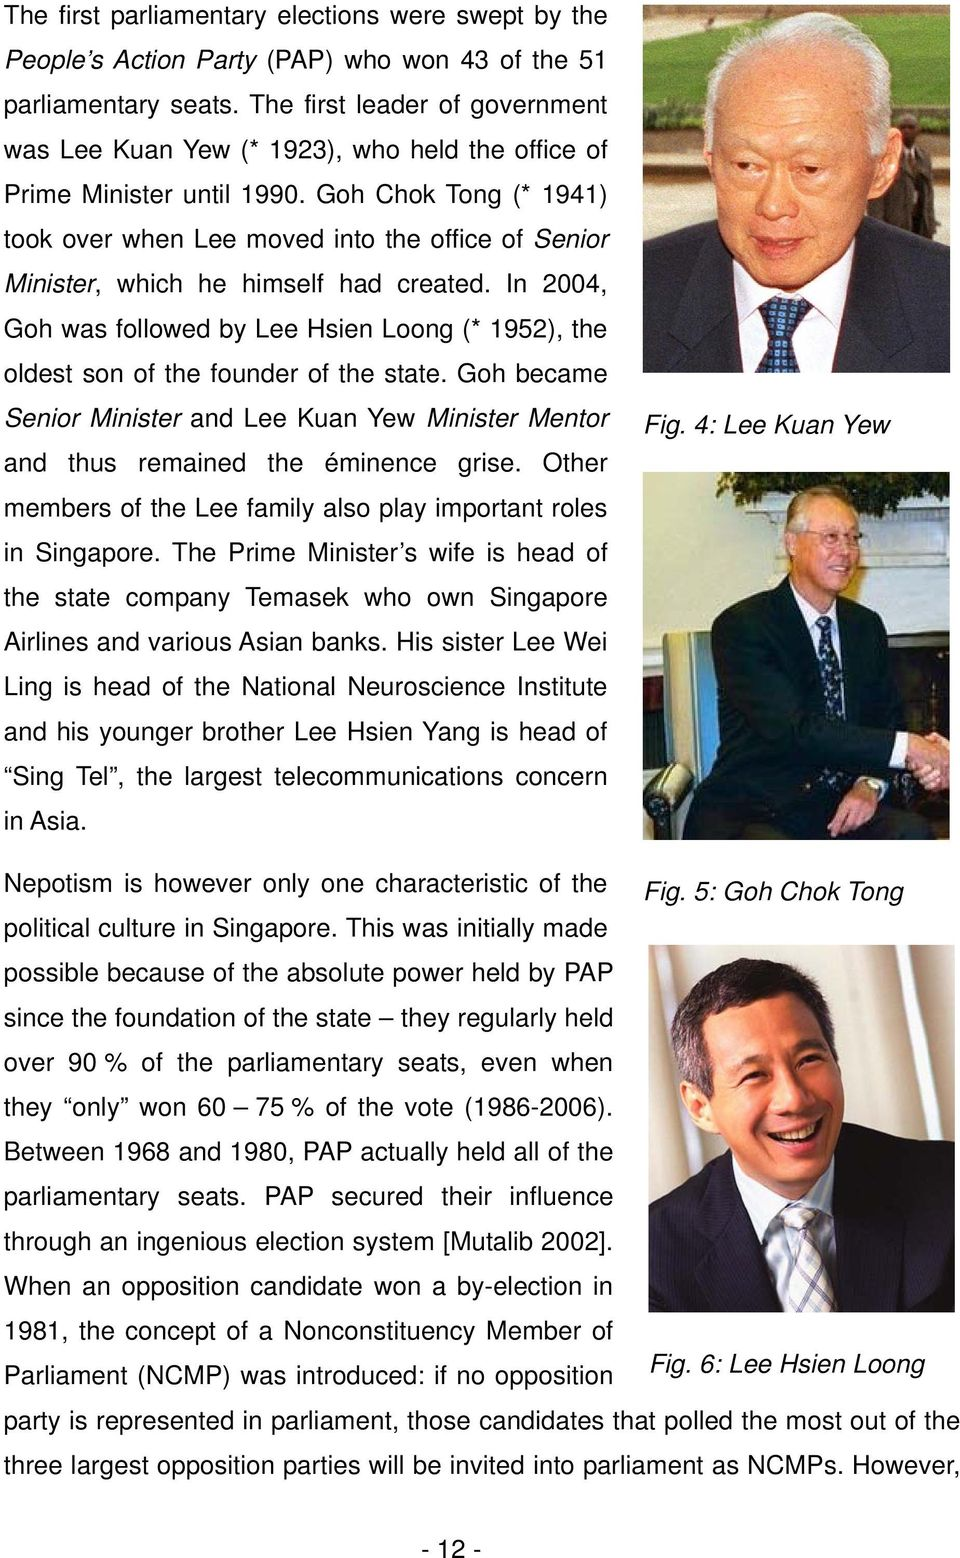 Goh Chok Tong (* 1941) took over when Lee moved into the office of Senior Minister, which he himself had created.